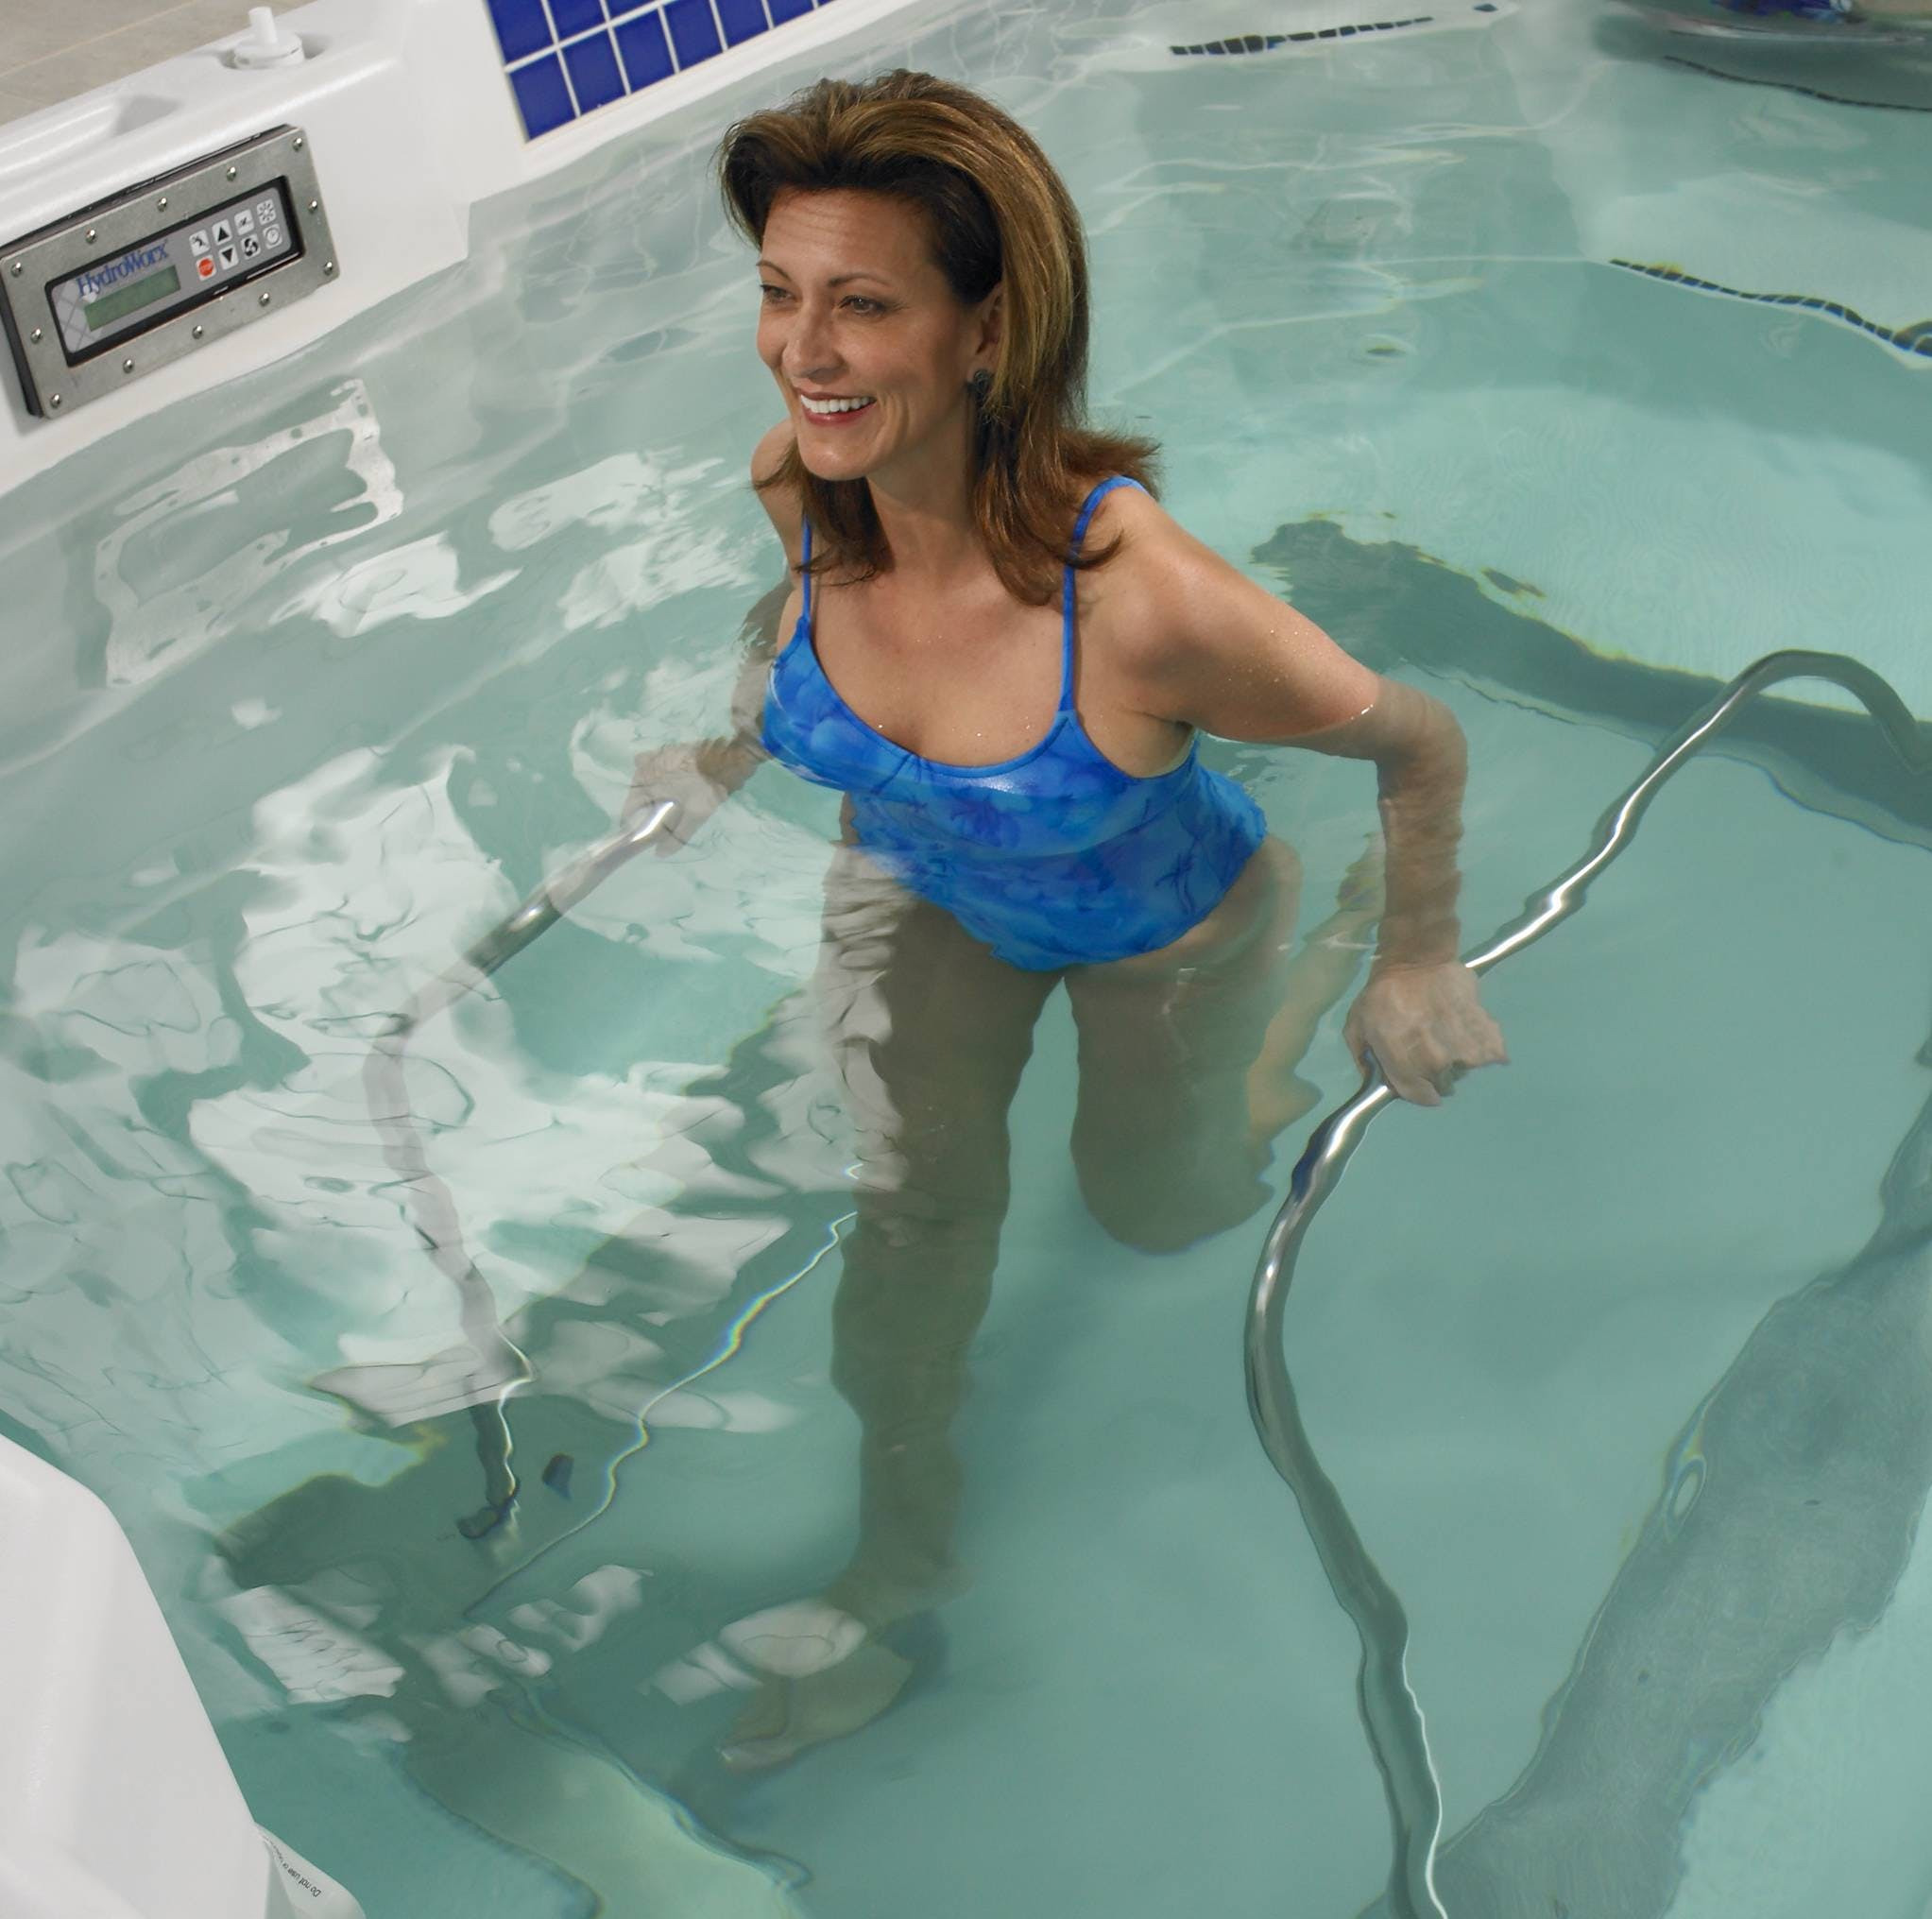 Terrapin aquatic therapy